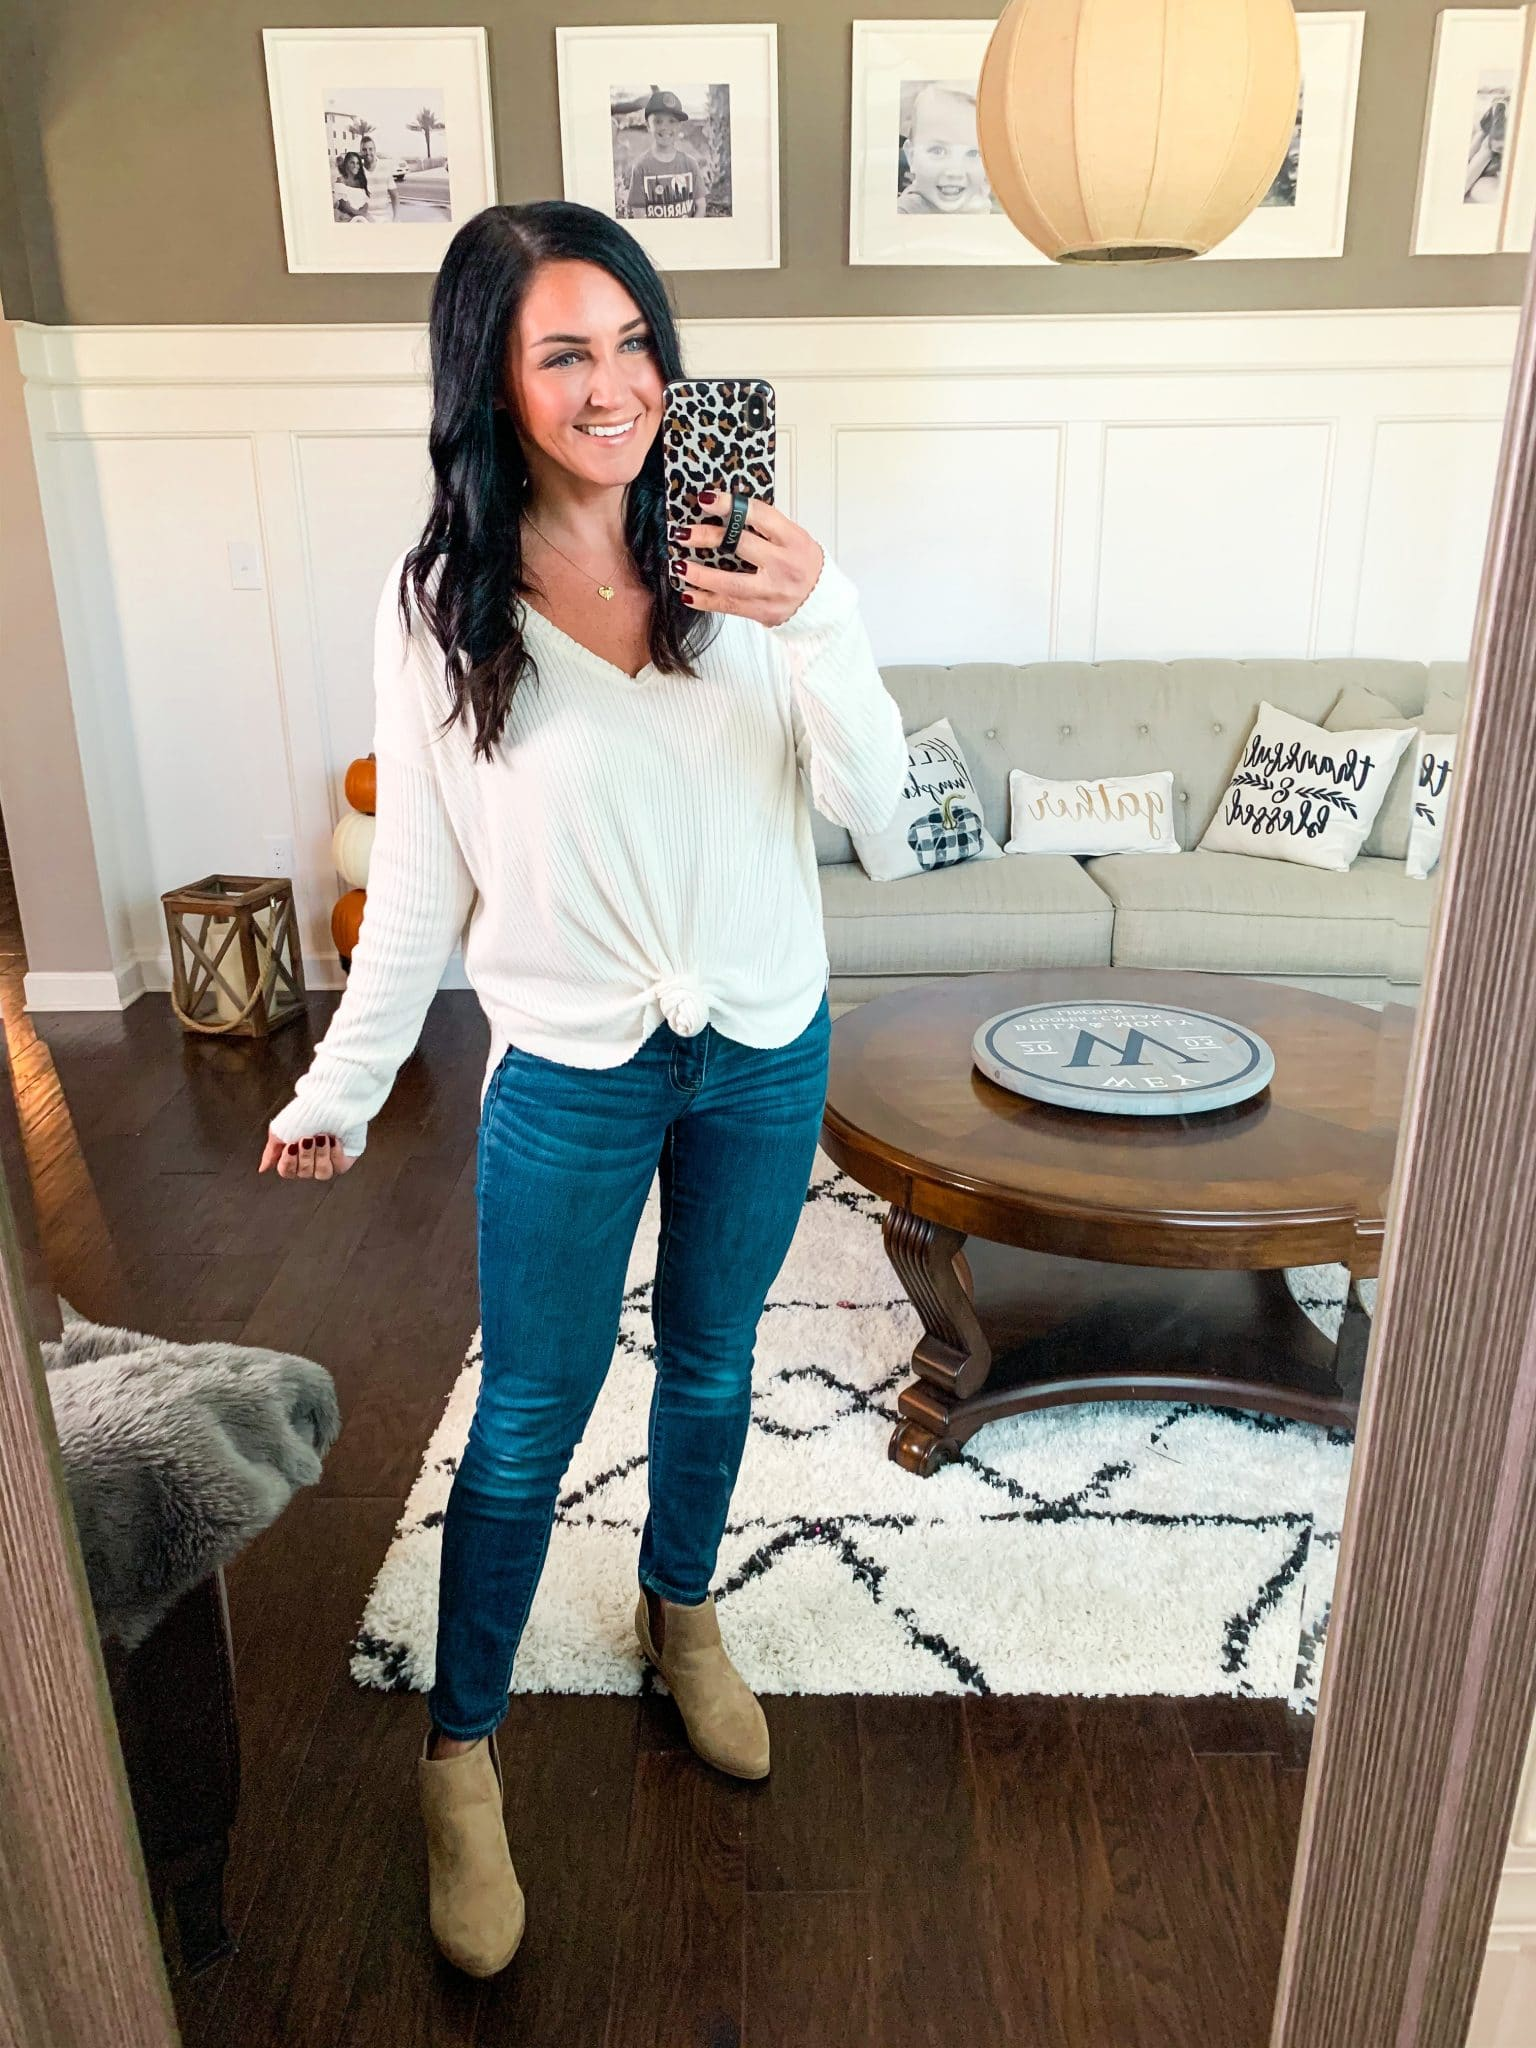 Free People Dupe Thermal, Target Style, Stilettos and Diapers, Molly Wey